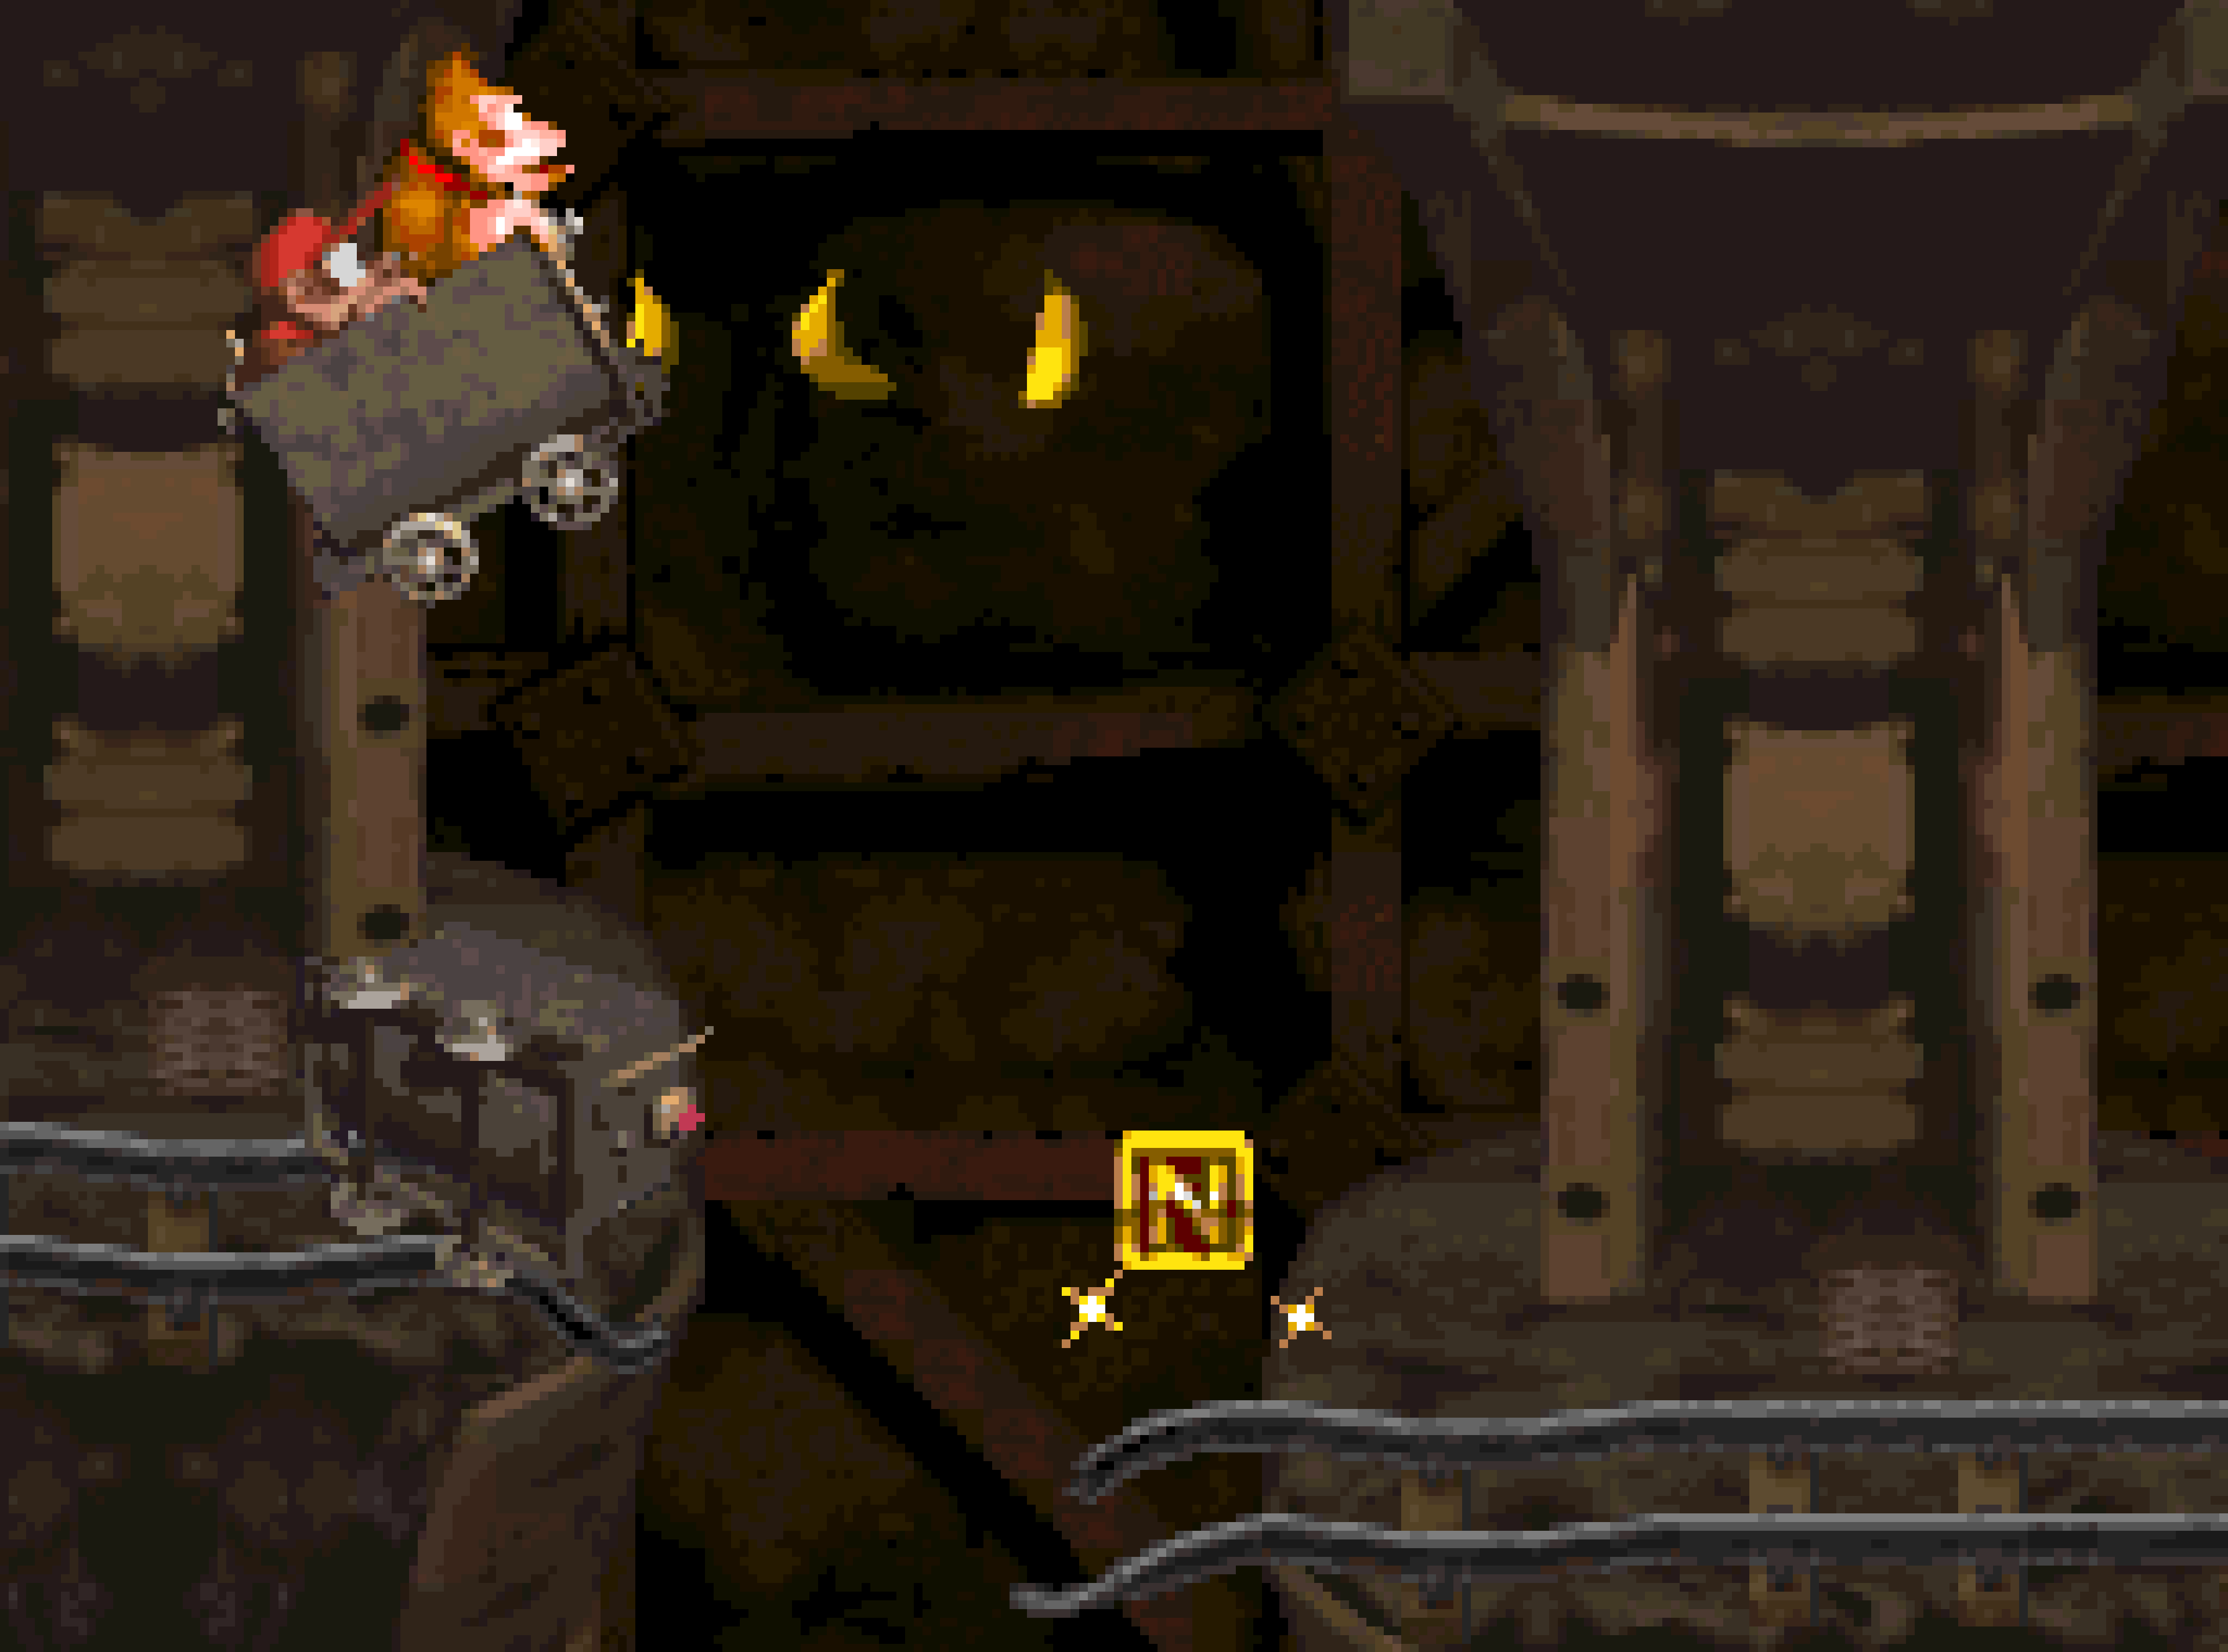 Mine Cart Madness, from World 2 of Donkey Kong Country.